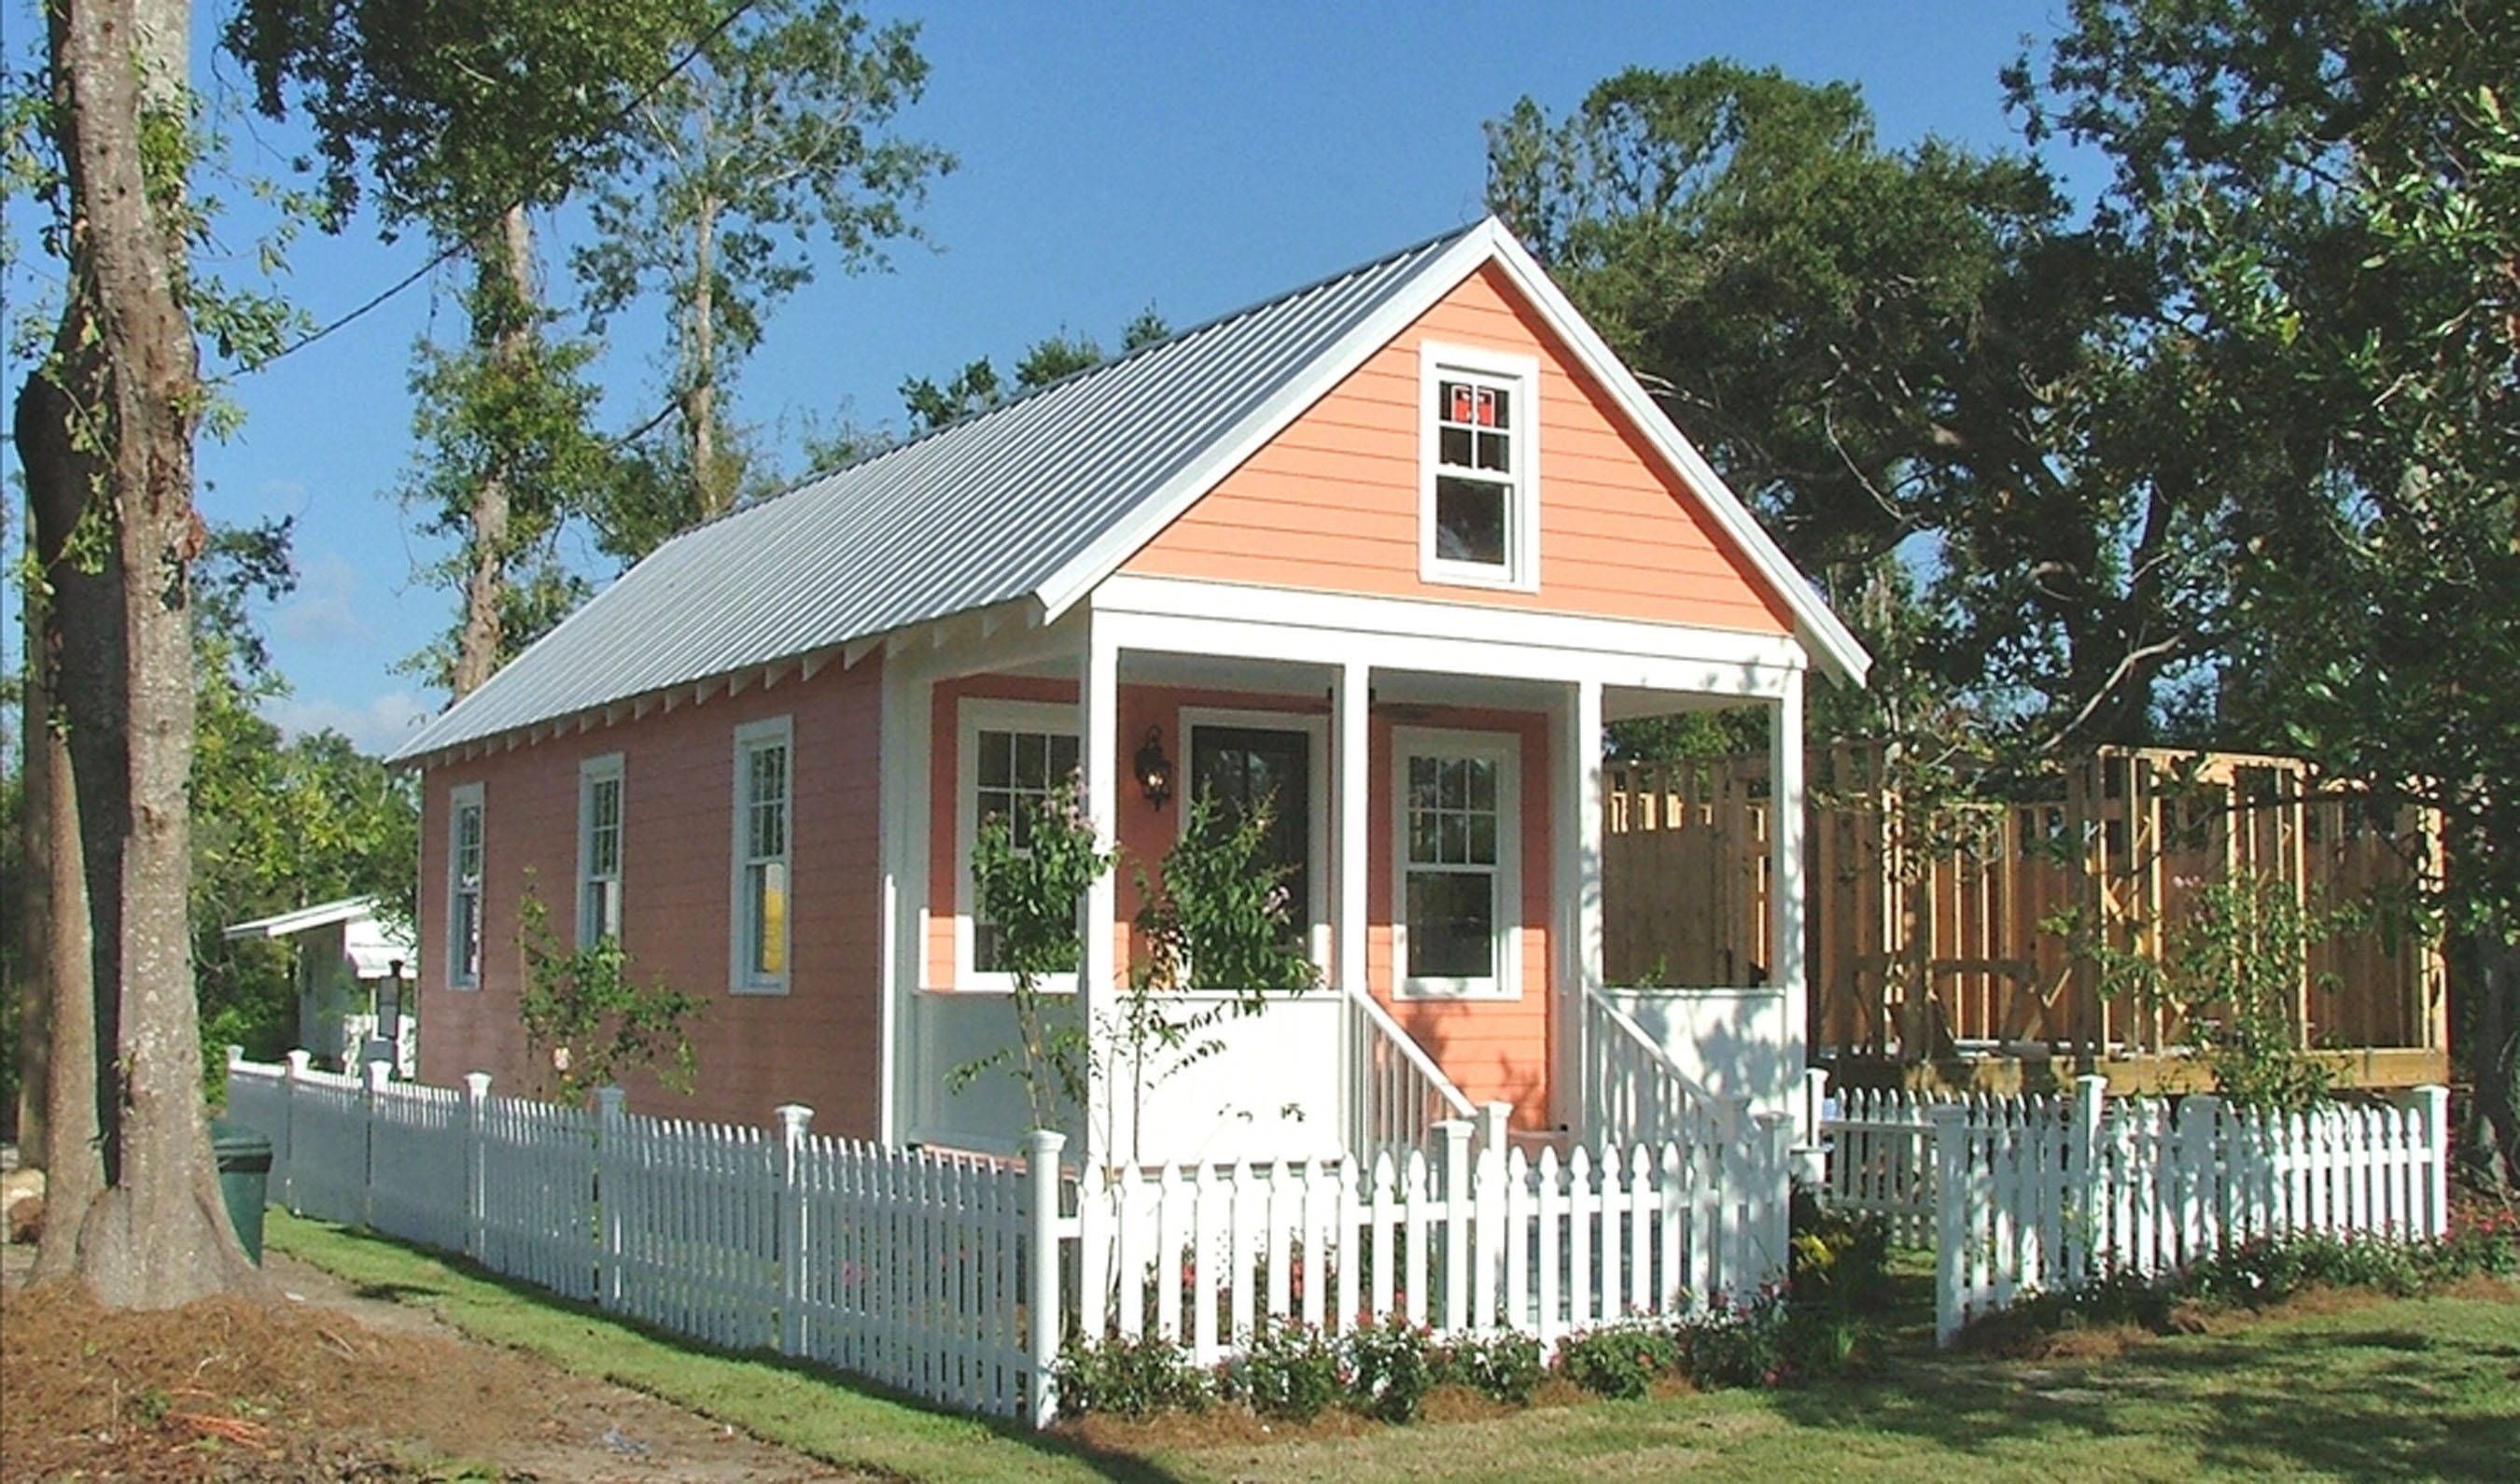 10+ images about tiny ~ small houses on pinterest | tiny house on